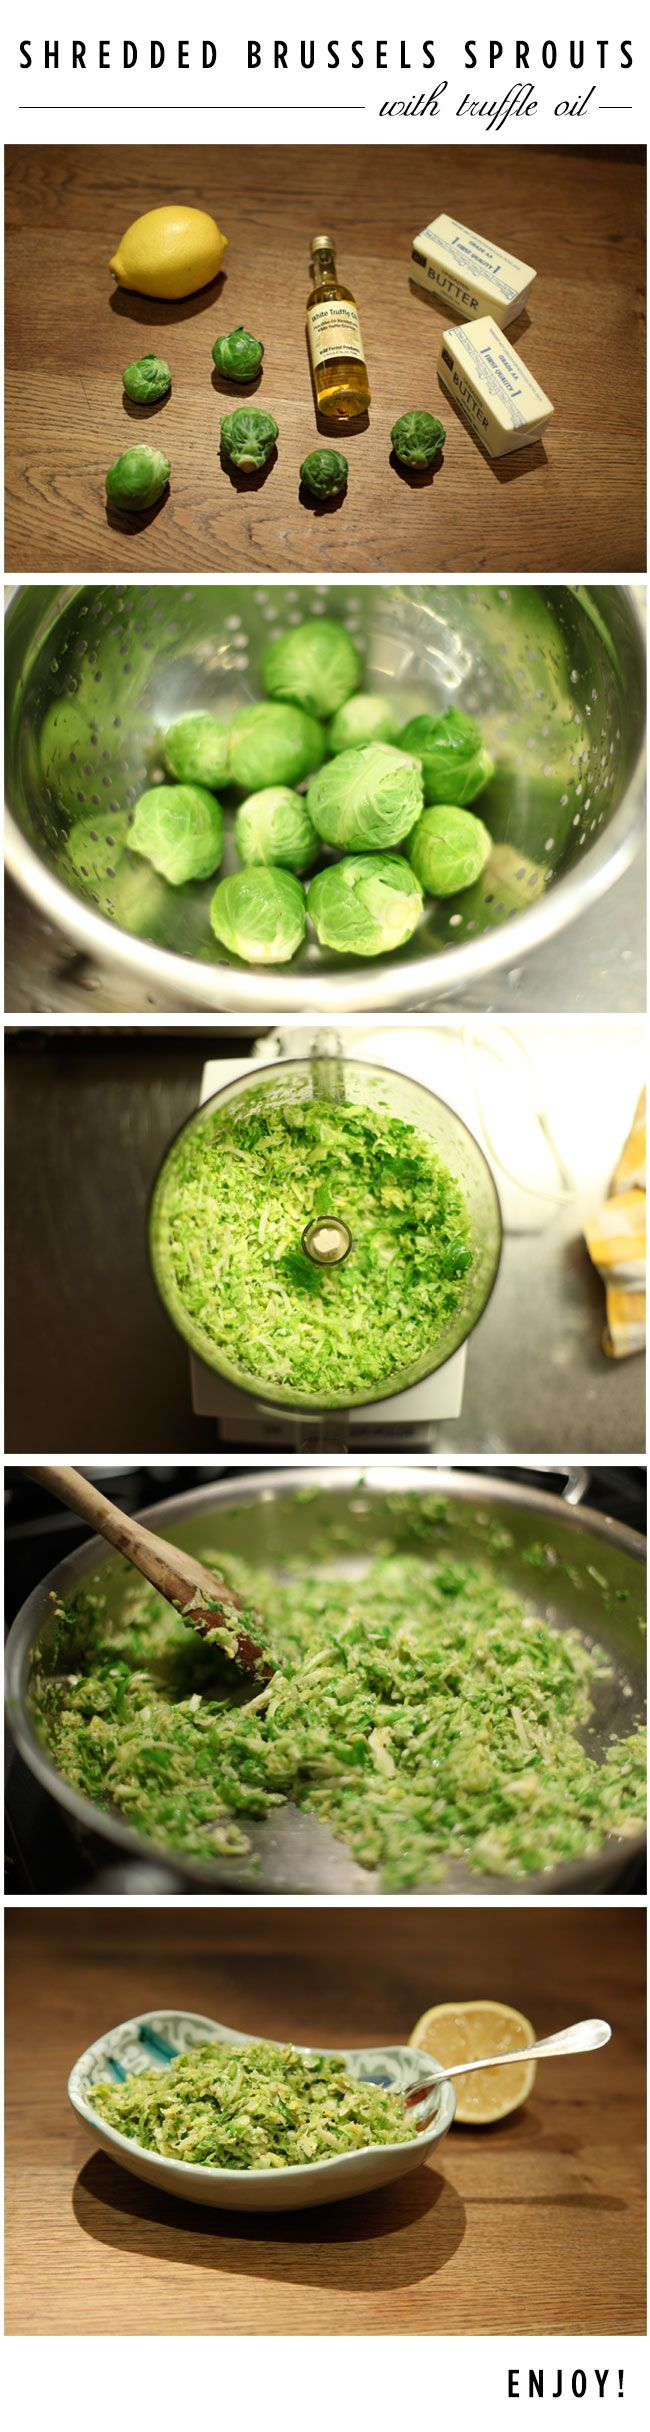 Nanette Lepore Shredded Brussels Sprouts with Truffle Oil - Favorite ...